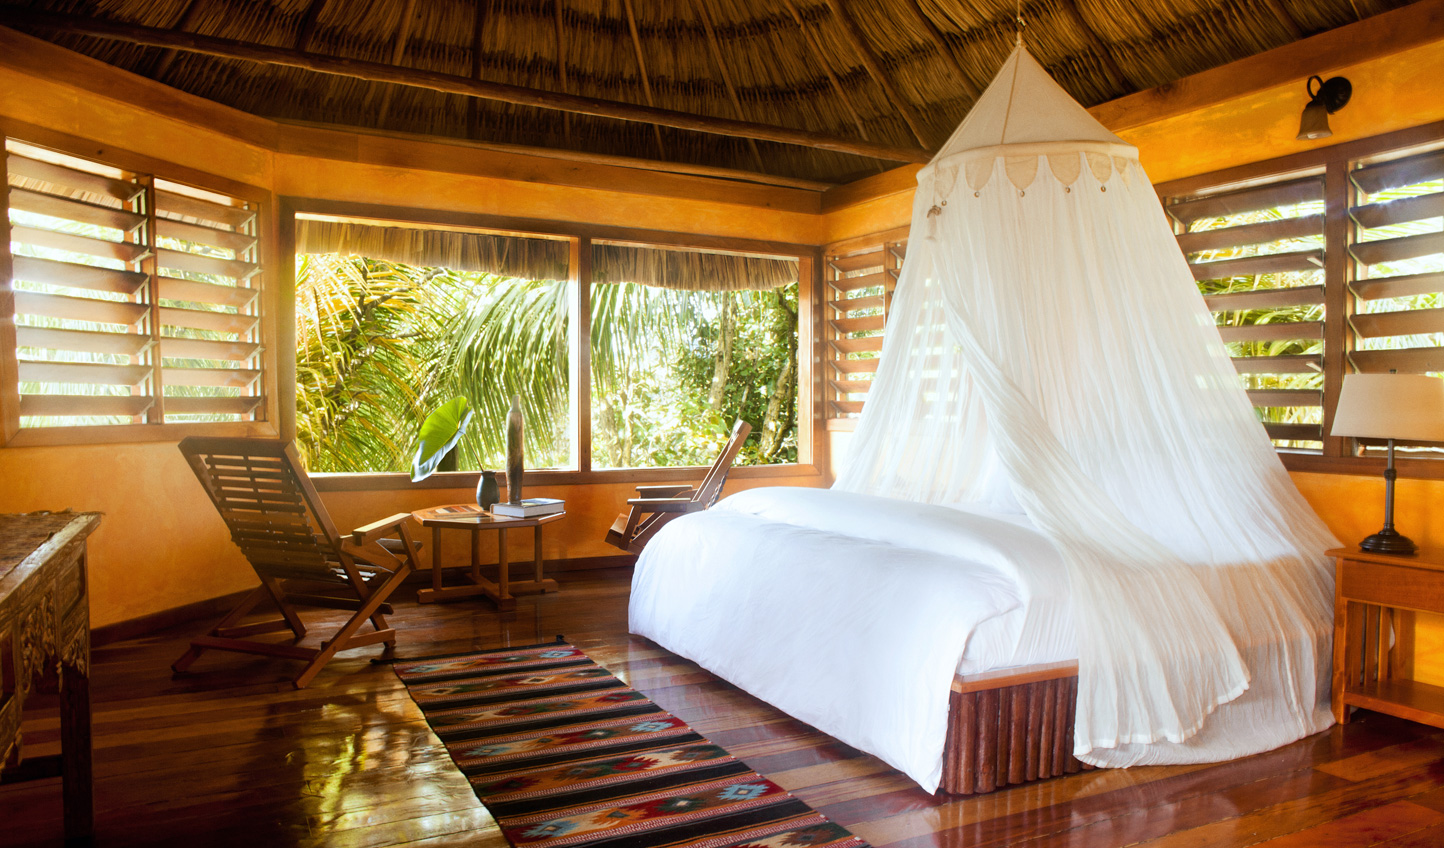 Indigineous materials are topped with delicate linens in your cabana